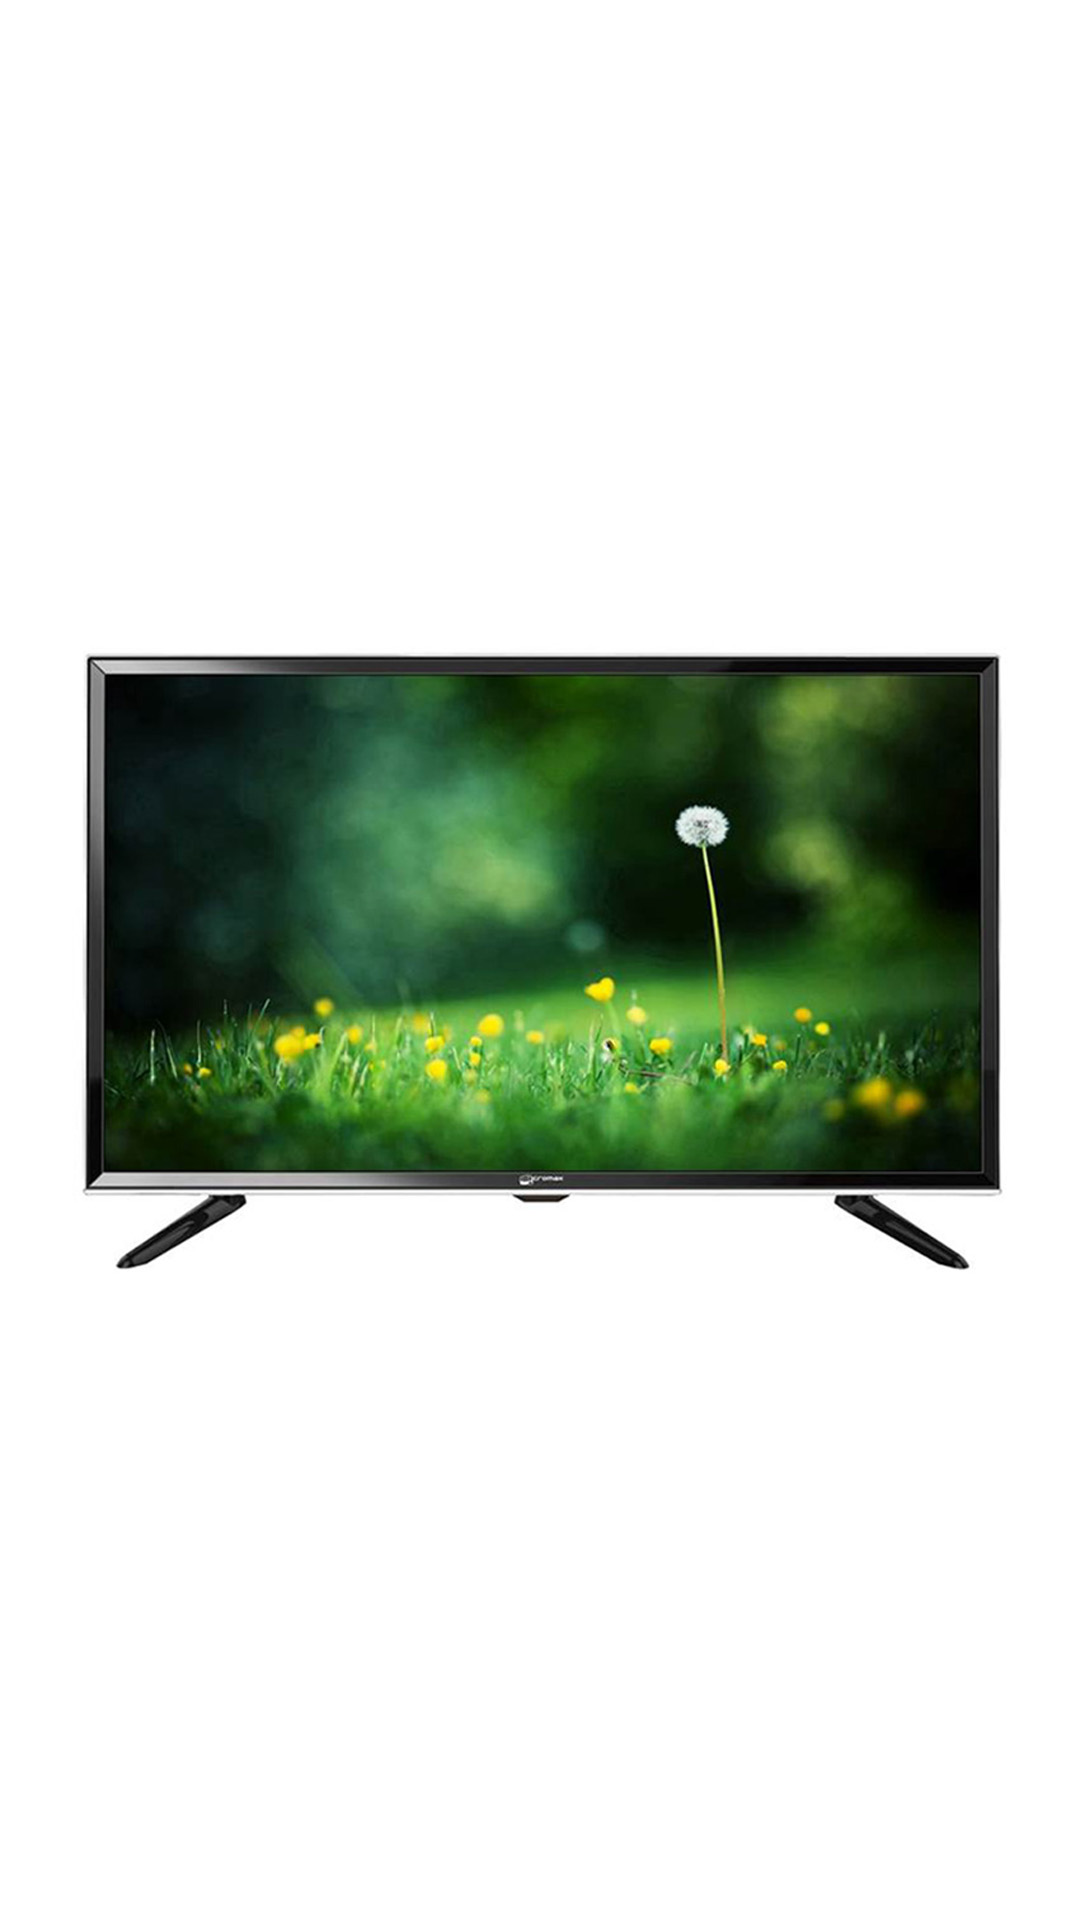 "Micromax 32T7290MHD 81.28 cm (32"") LED TV (HD Ready)"